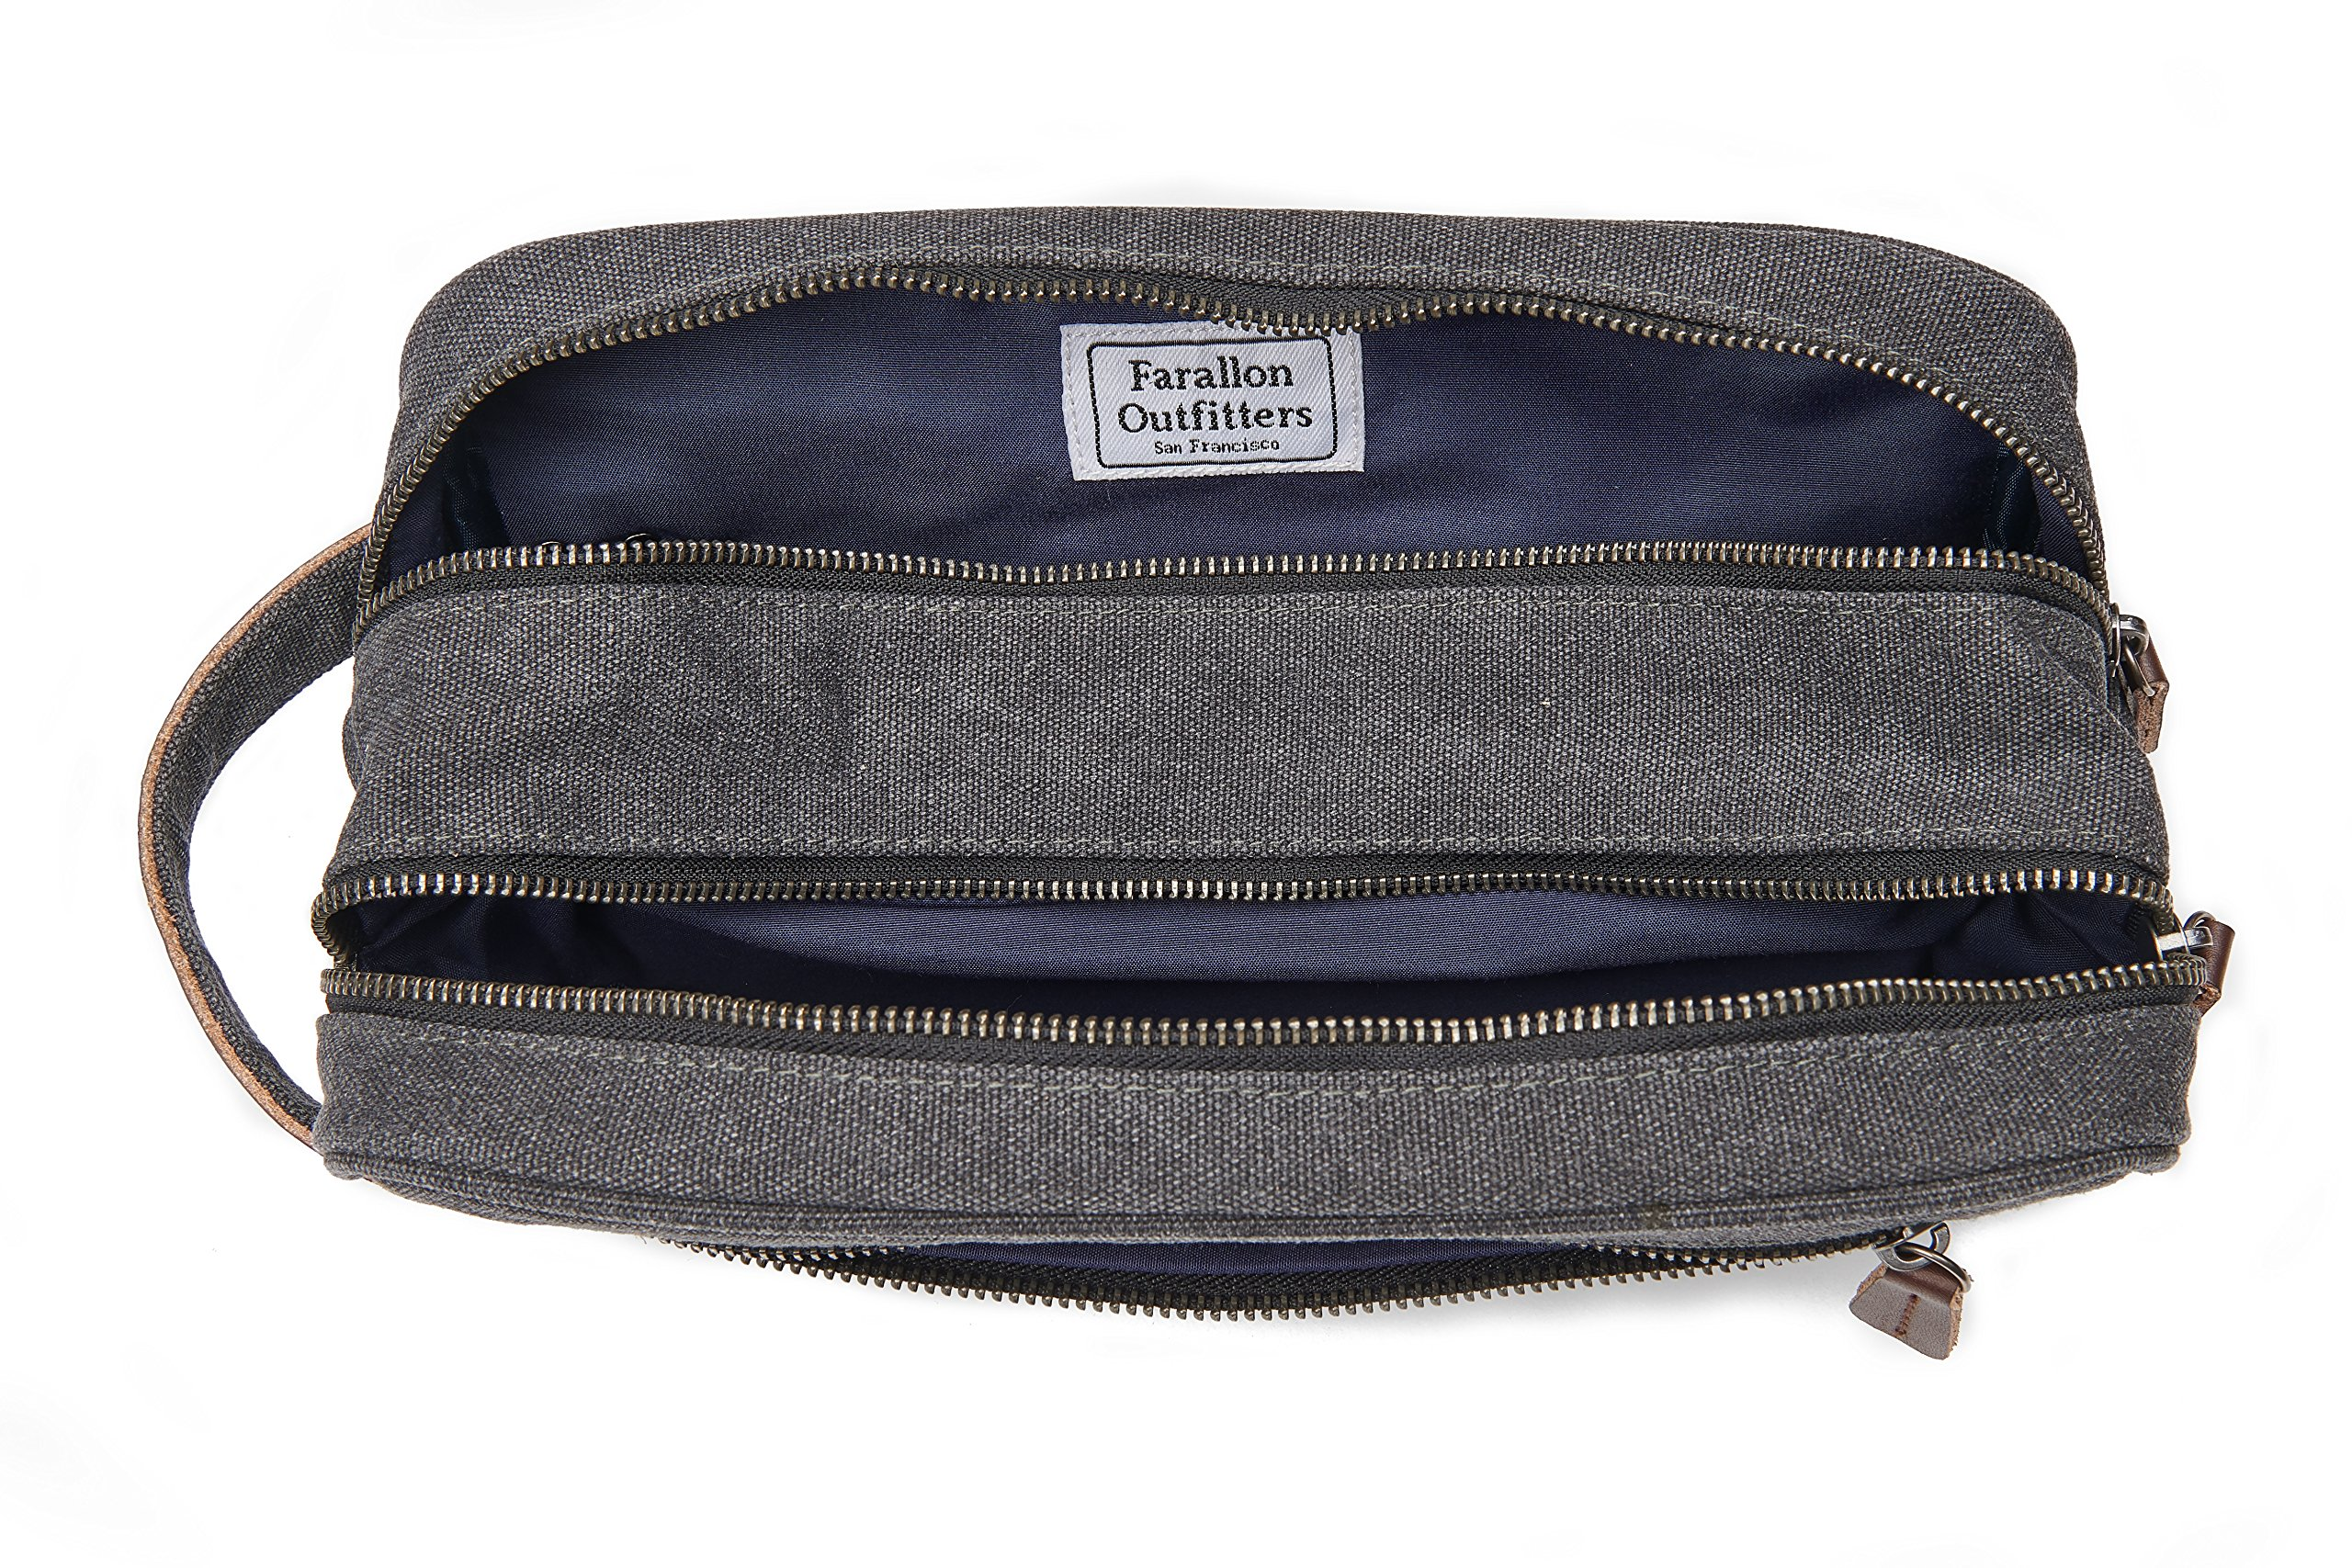 Mens Toiletry Bag – Canvas Vintage Dopp Kit, Genuine Leather, 3 Compartments, for Travel, Gym, Shaving and Grooming, by Farallon Outfitters